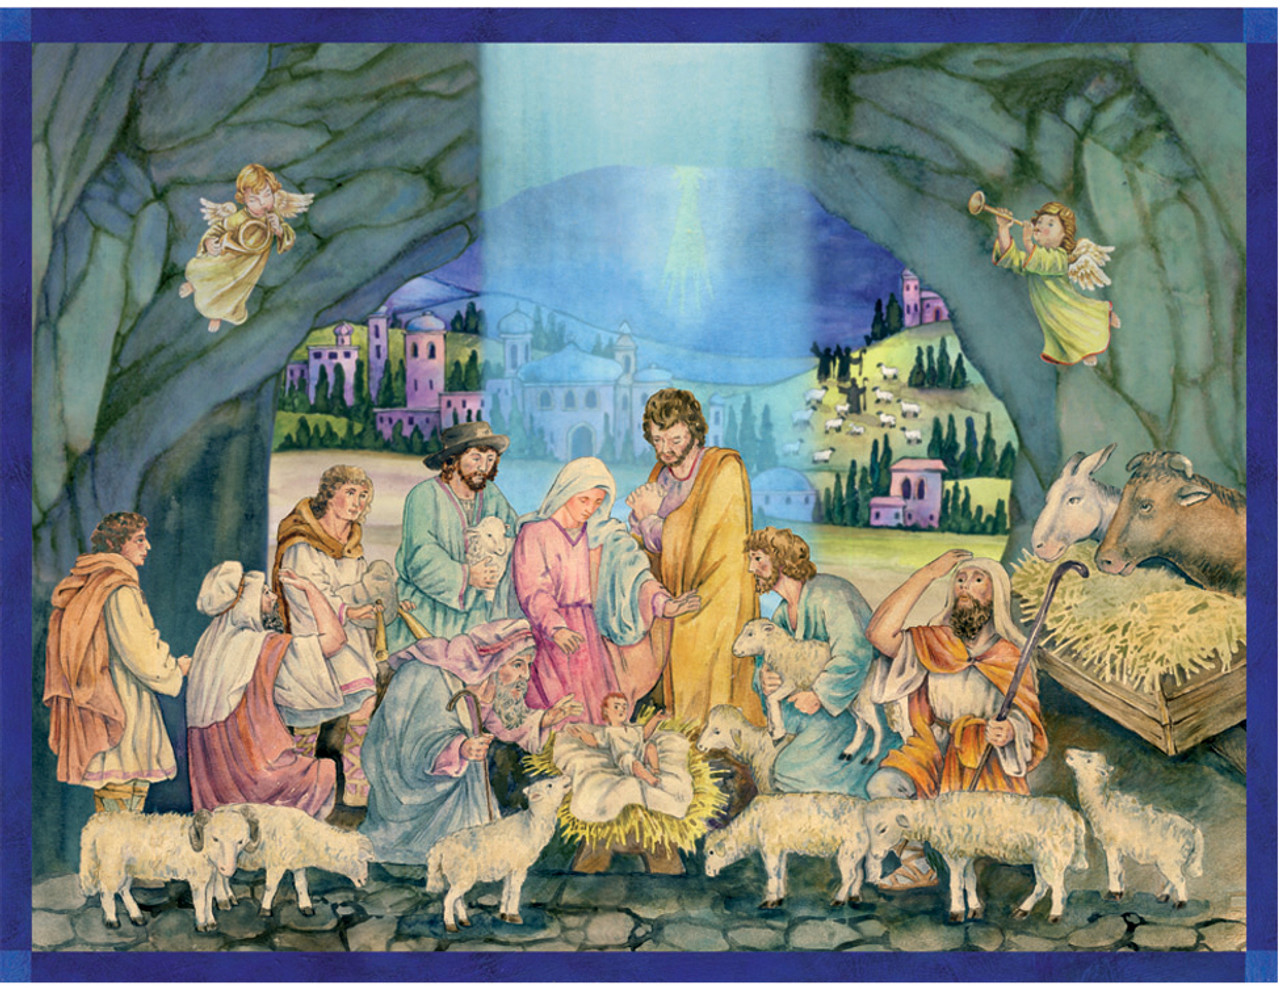 Birth of Christ Manger Scene German Advent Calendar